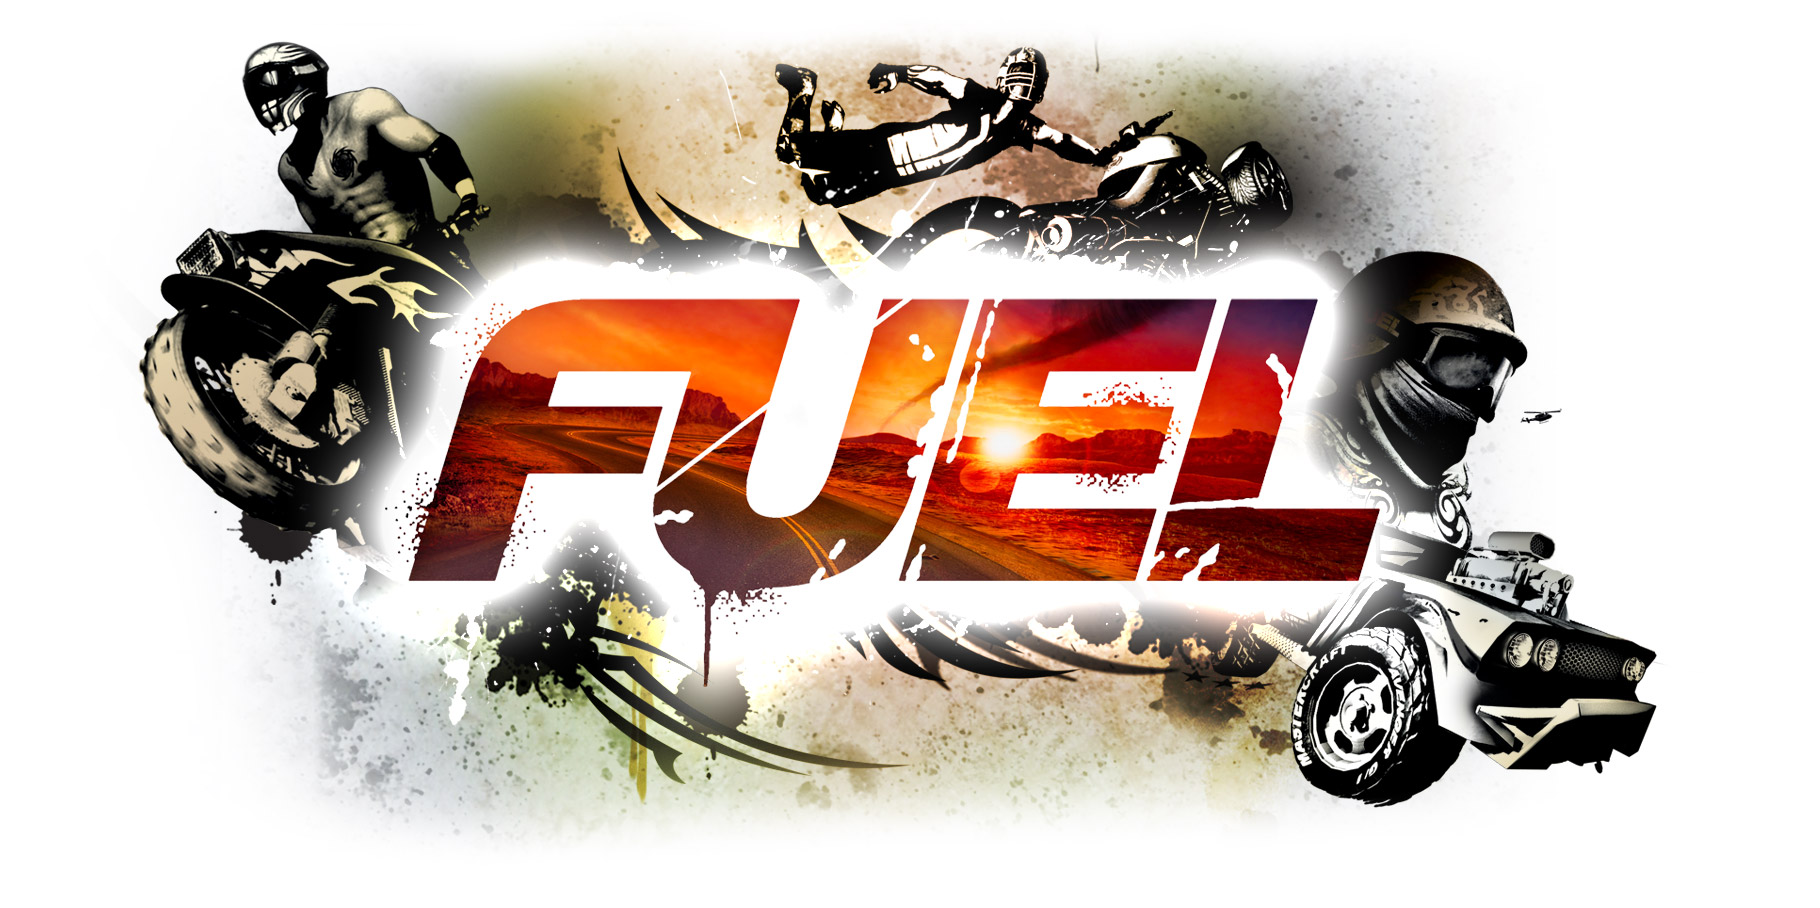 Artwork for Fuel